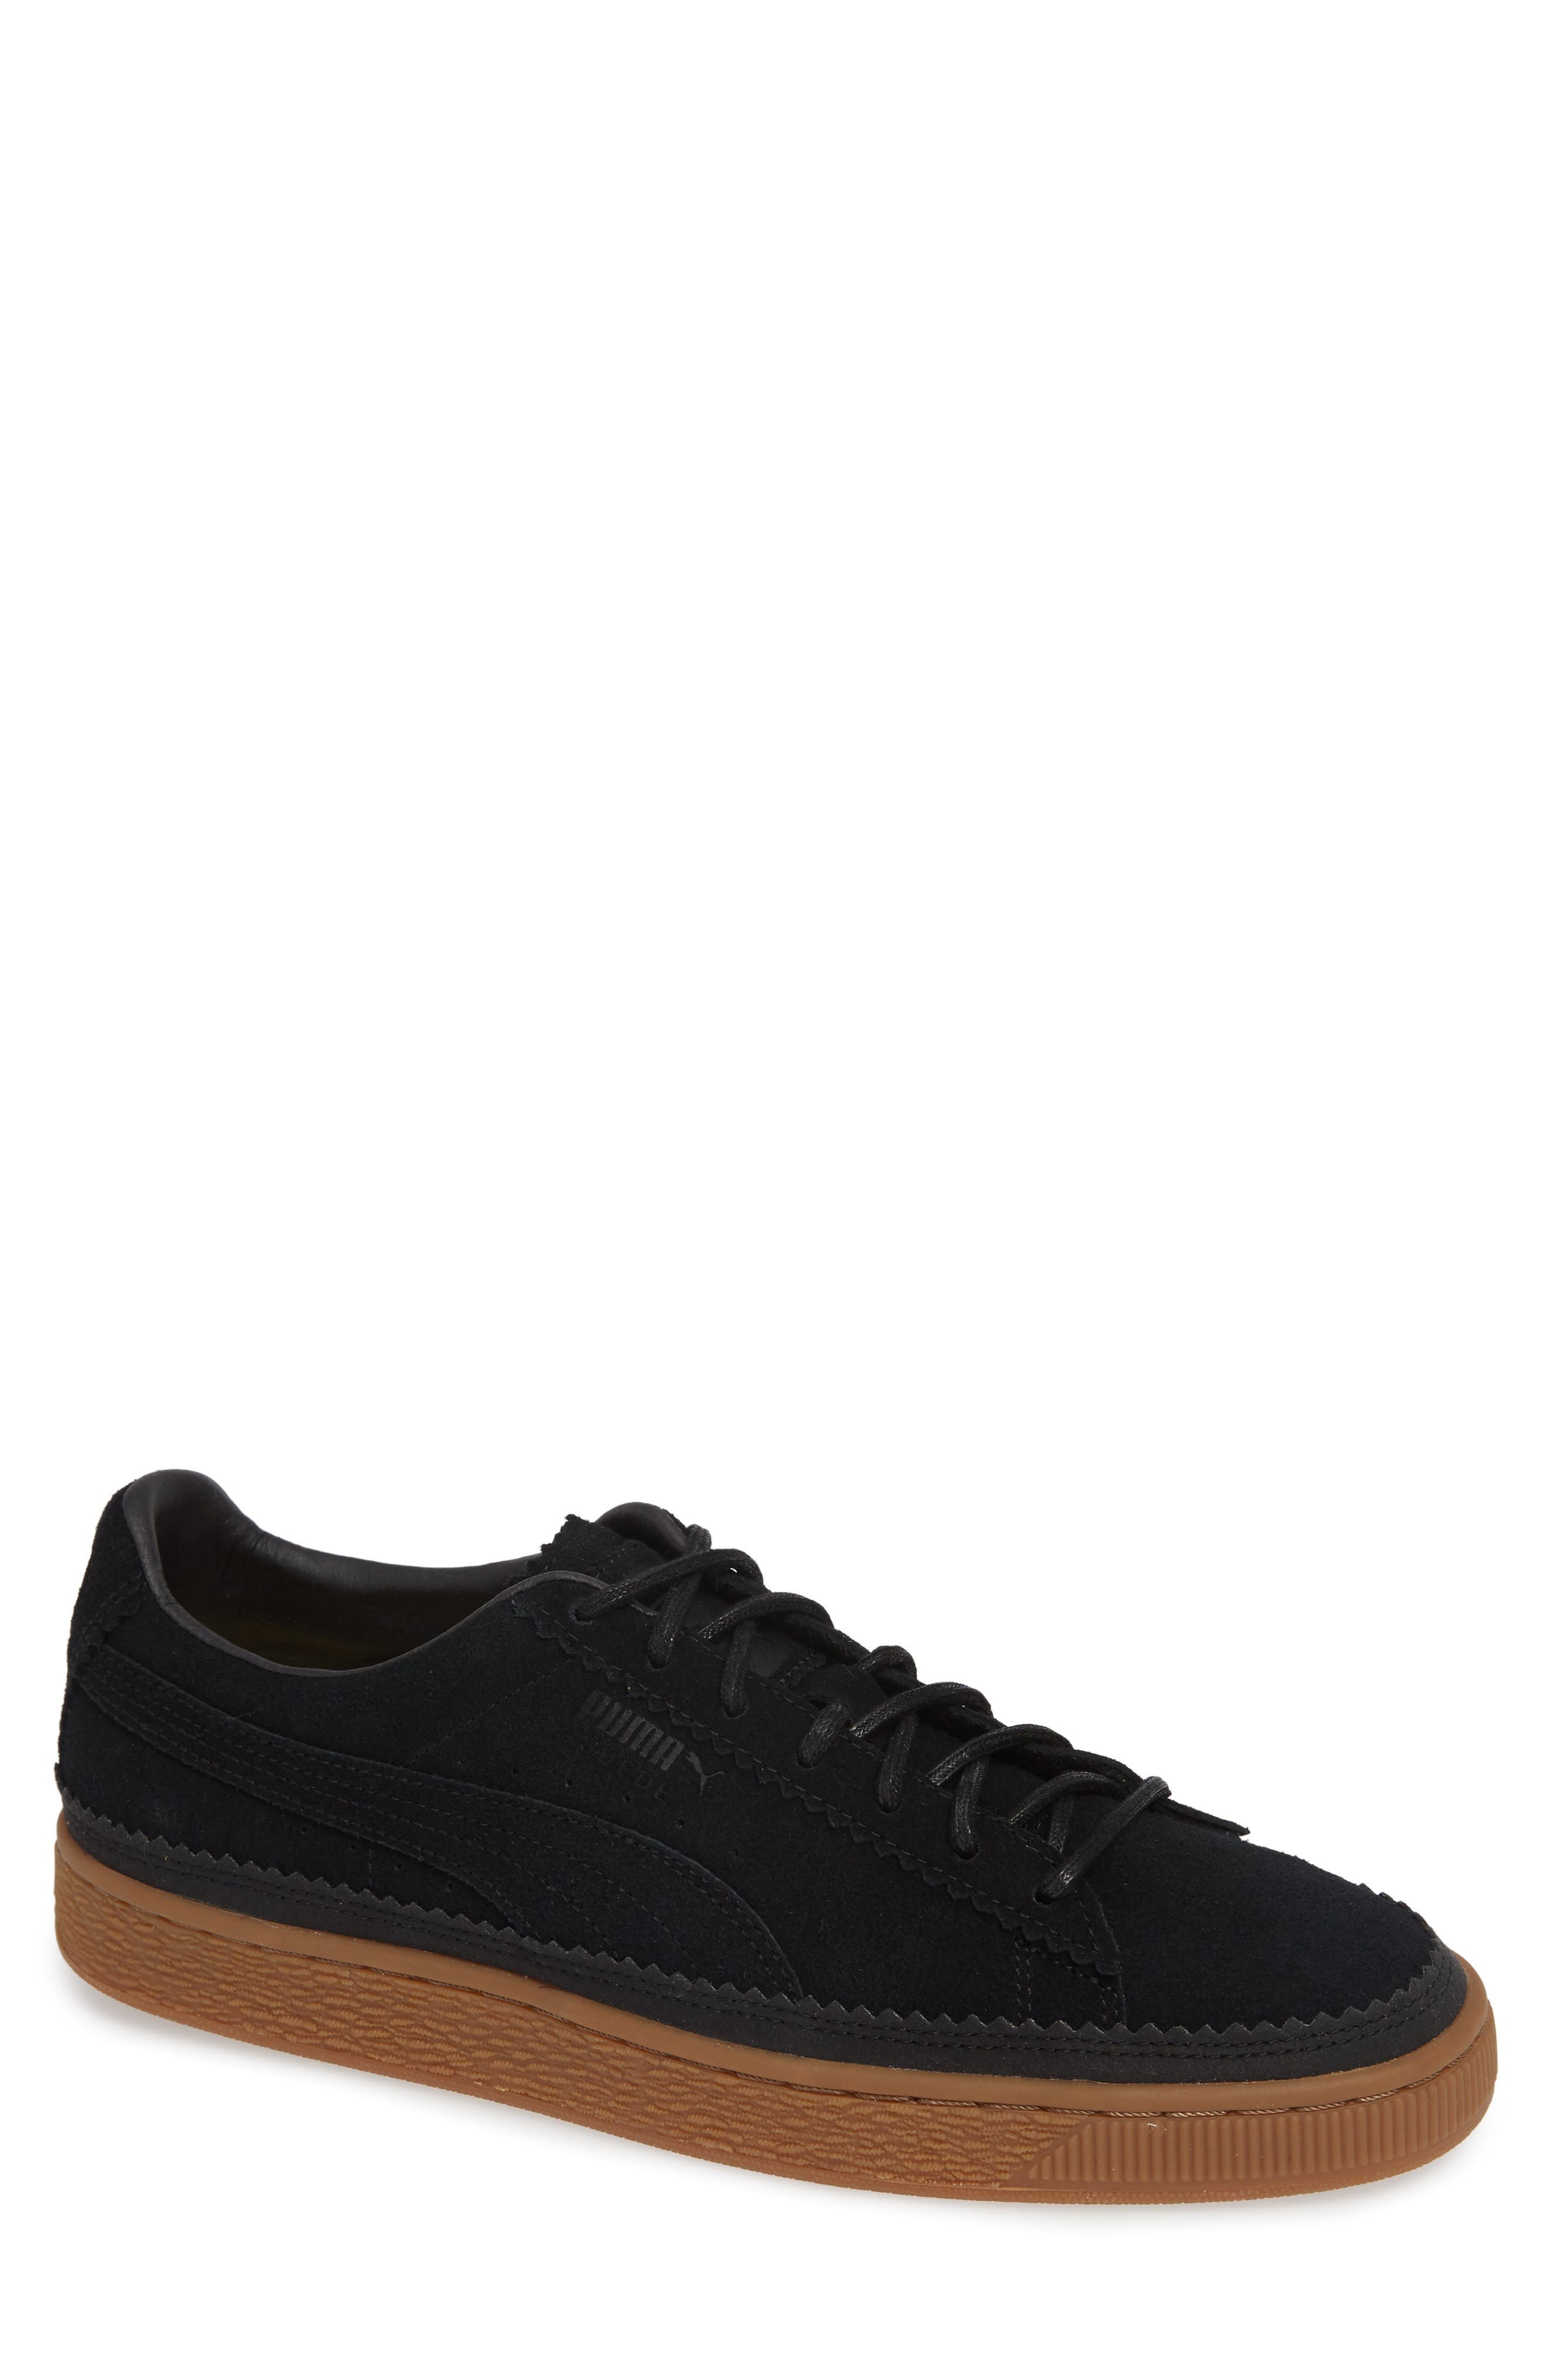 Suede Sneaker,                             Main thumbnail 1, color,                             BLACK/ BLACK